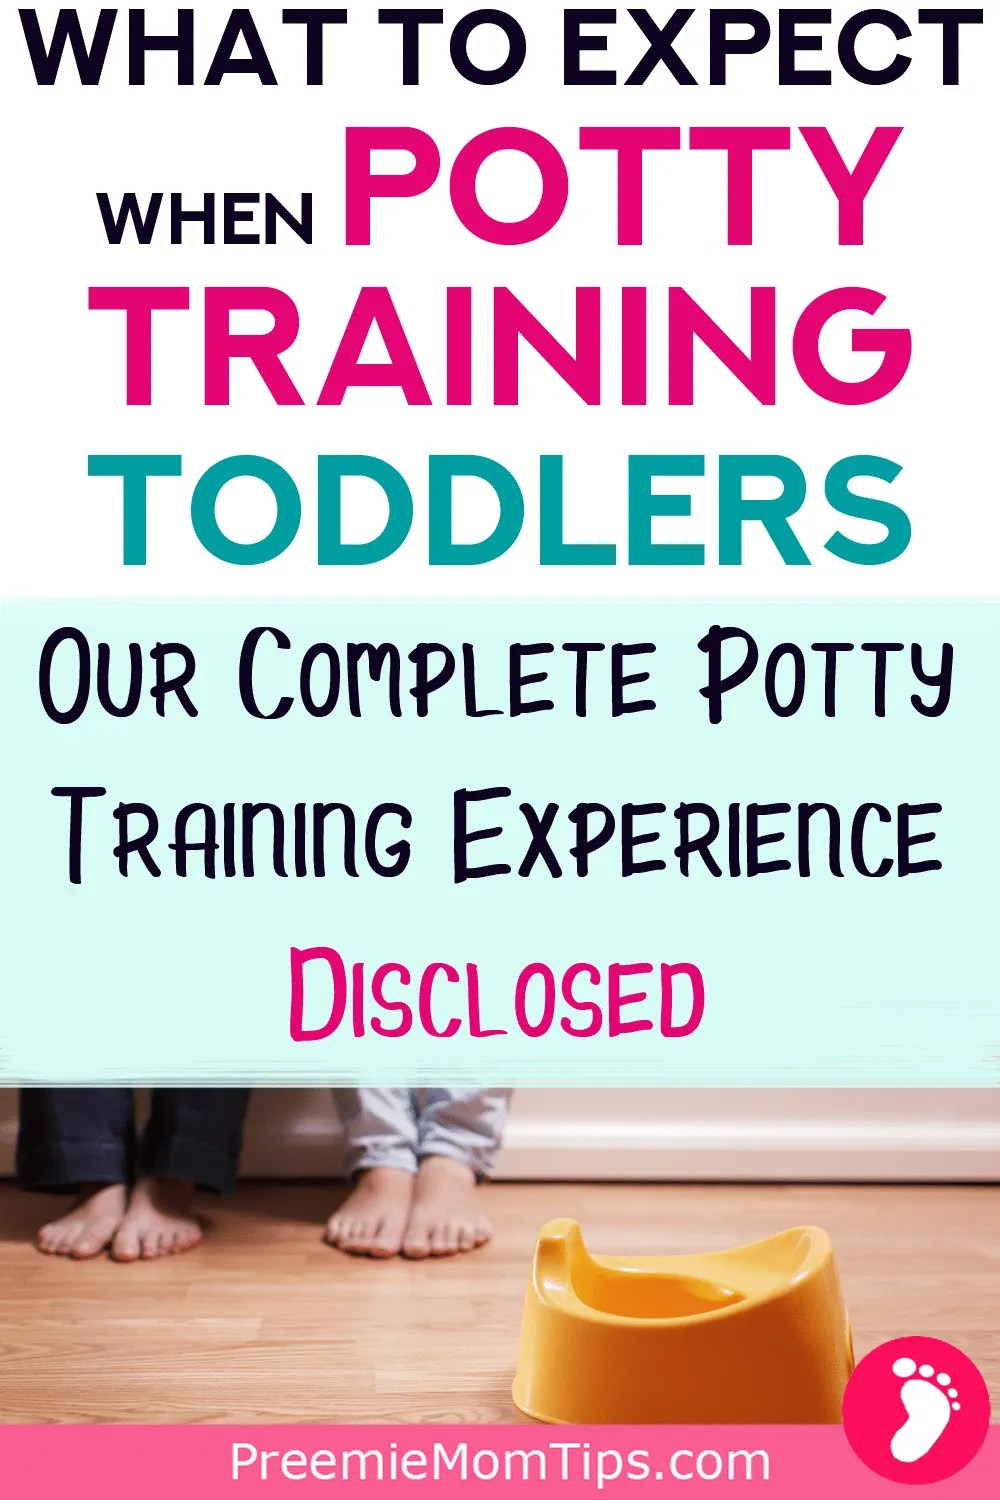 The complete guide to potty training success! All you need to know about how we potty trained our preemie toddler!